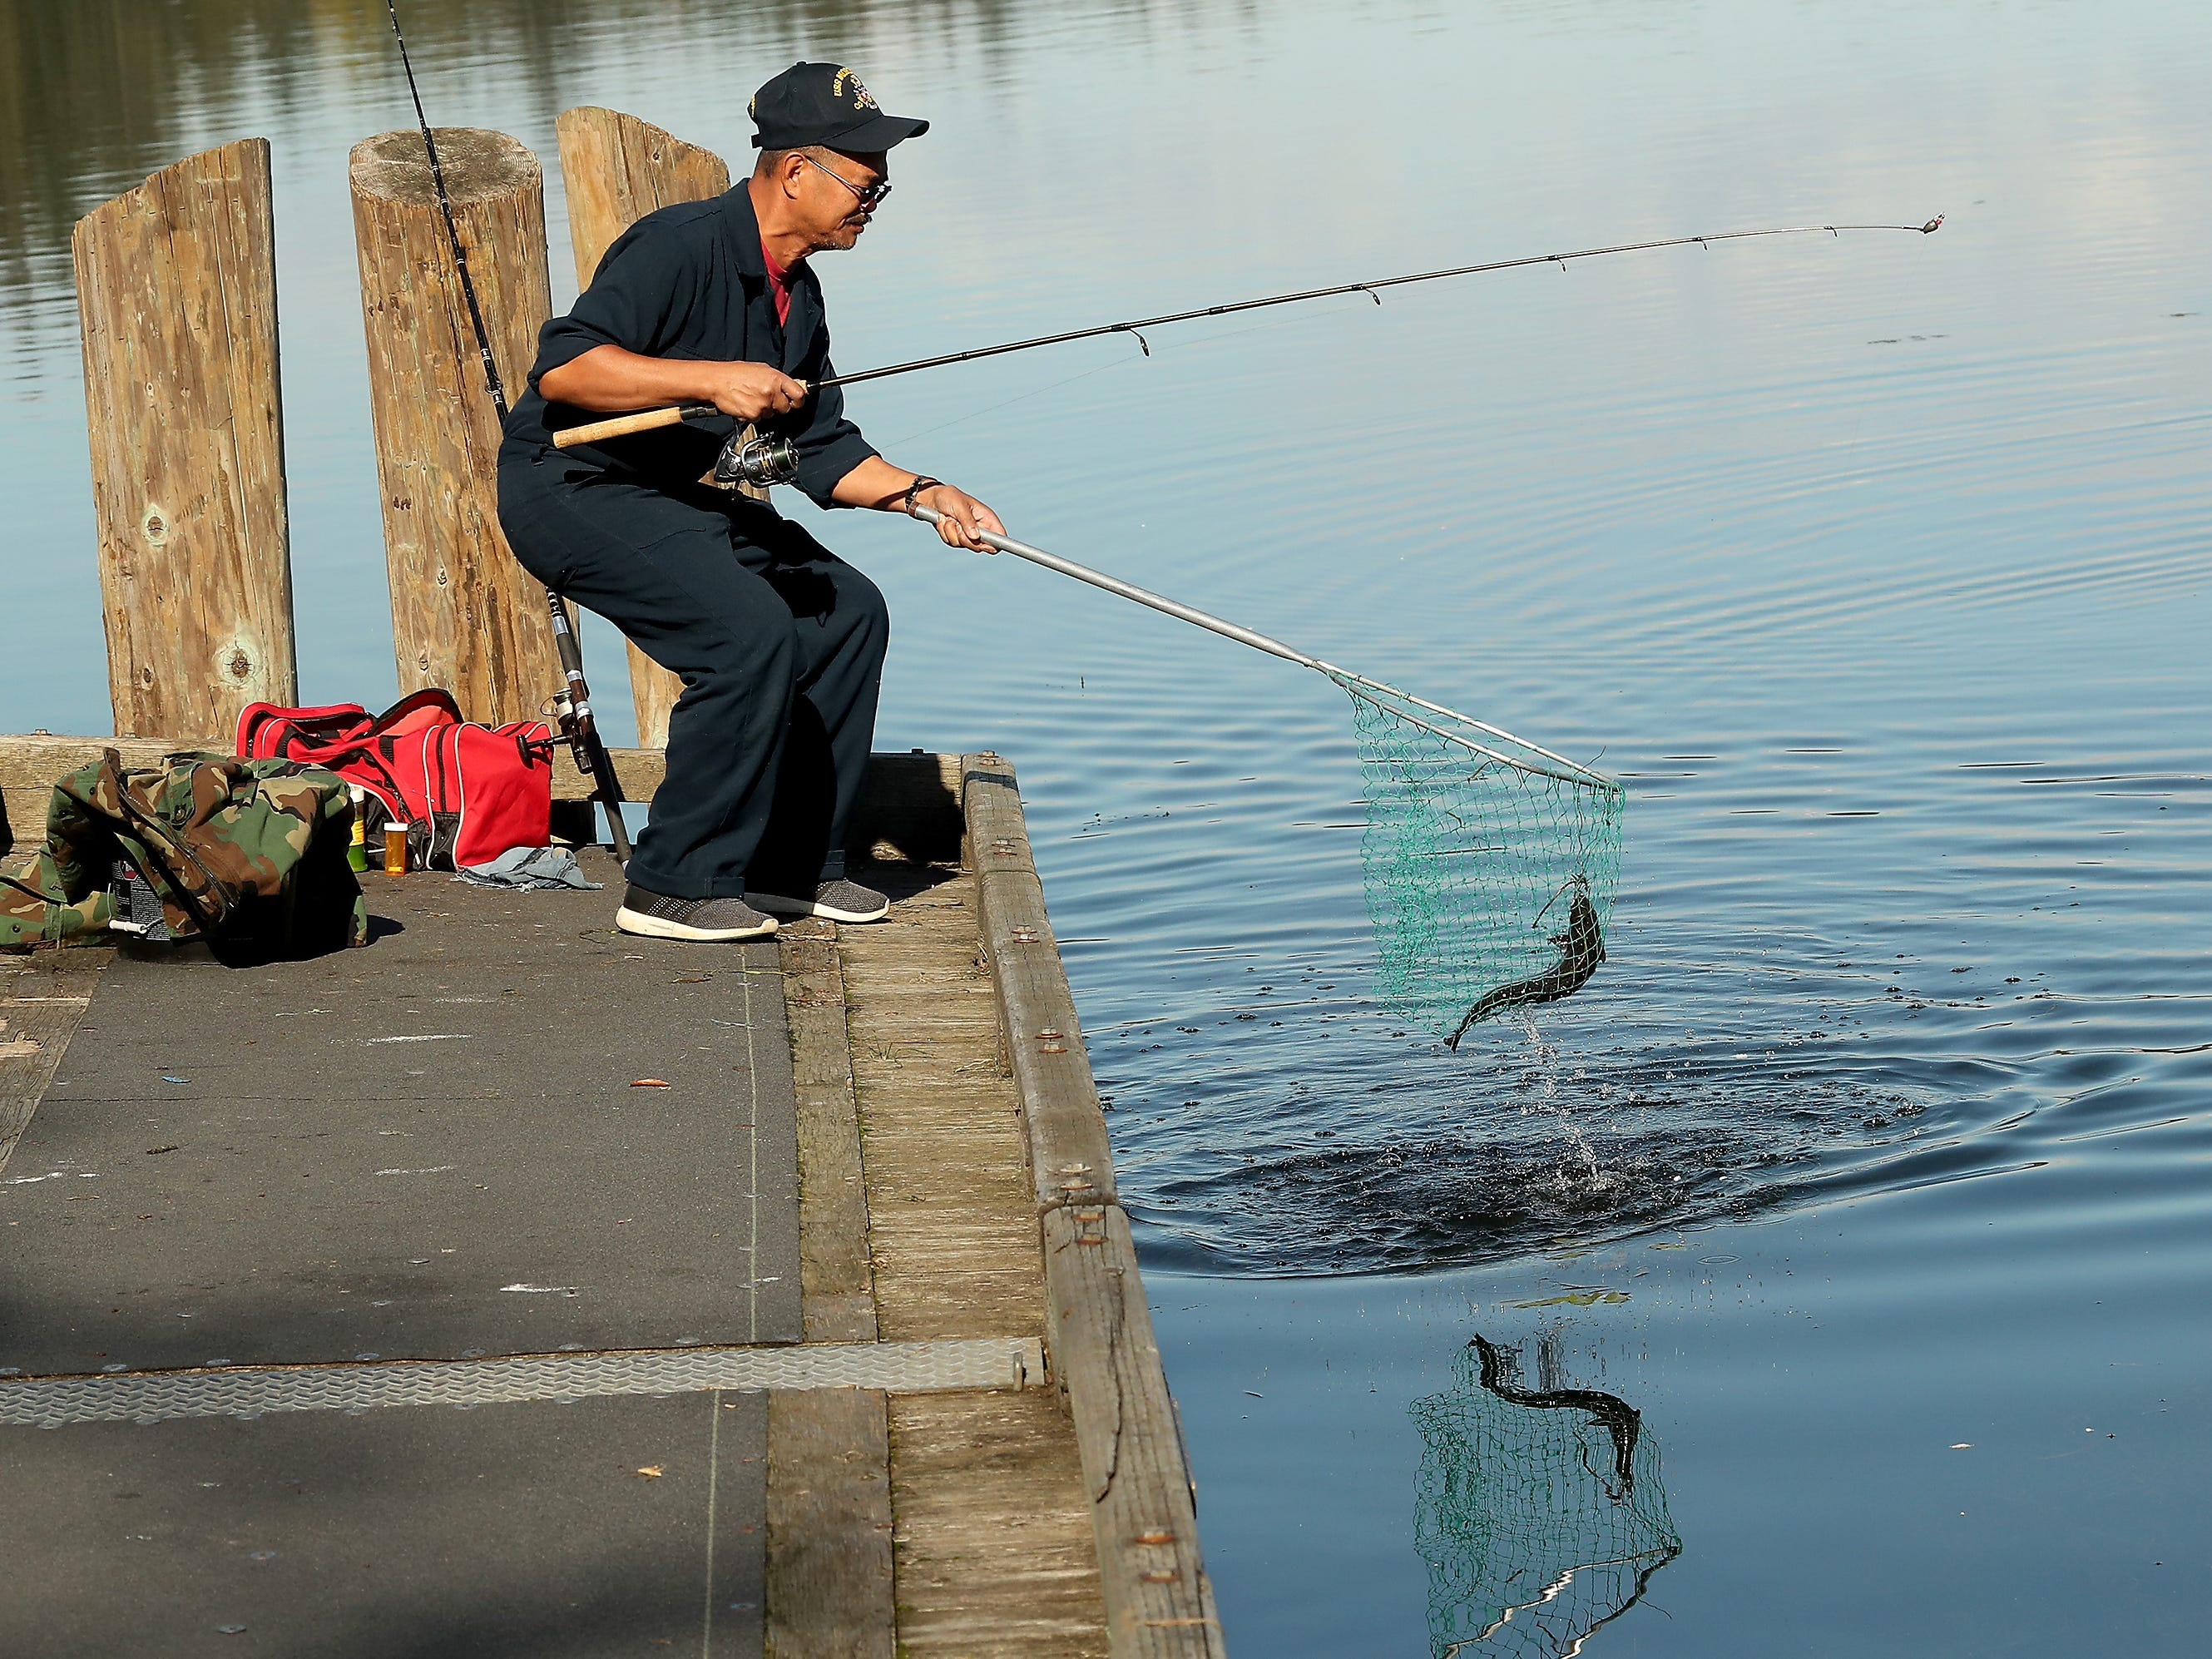 Alejo Dominguez scoops up a rainbow trout in his net while fishing from the dock at Kitsap Lake Park in Bremerton on Wednesday, October 10, 2018.